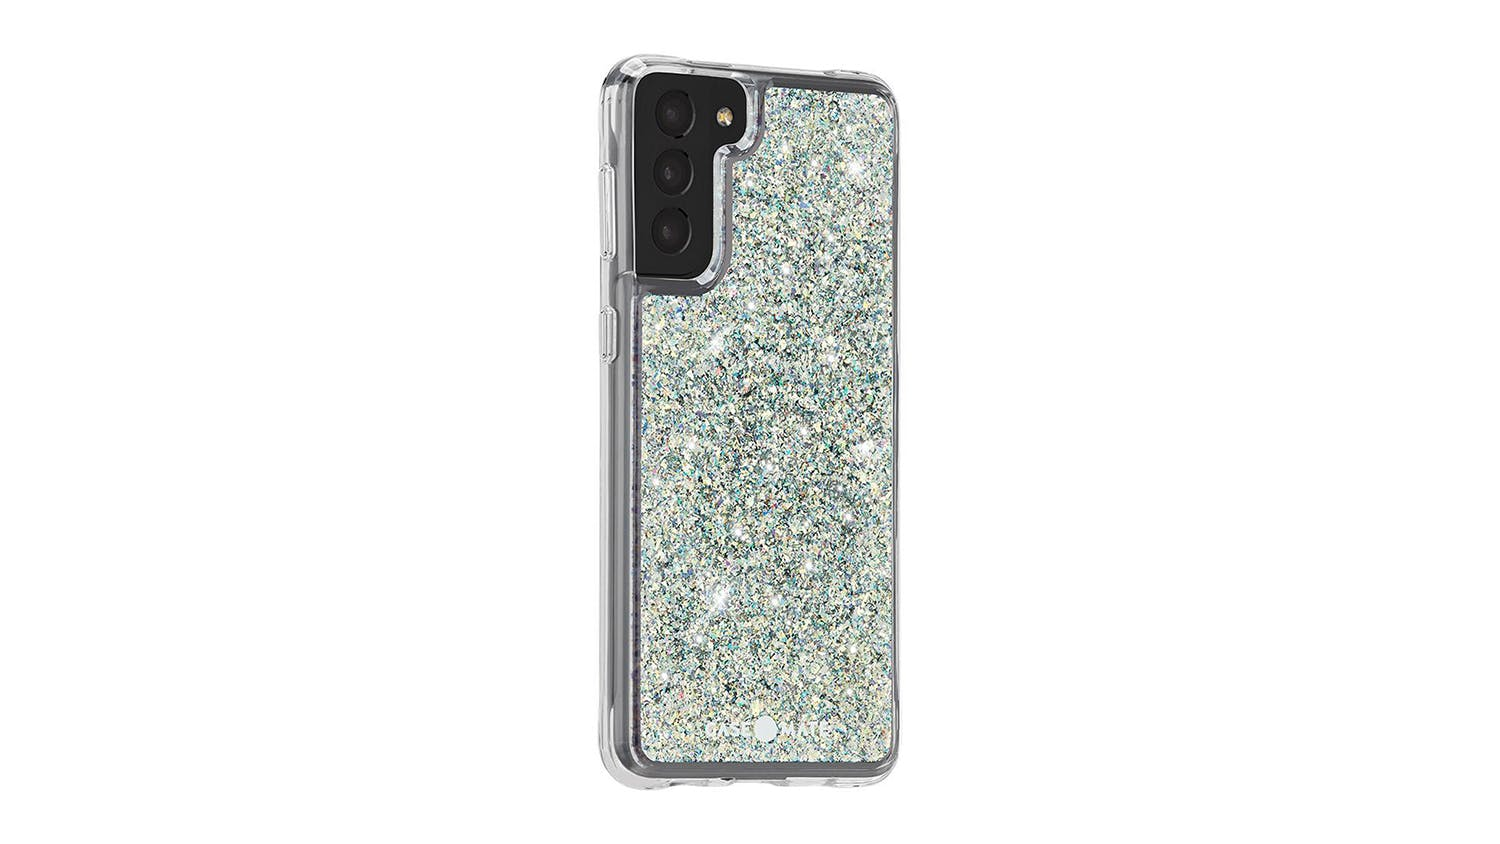 Case-Mate Case for Samsung Galaxy S21+ - Twinkle Stardust